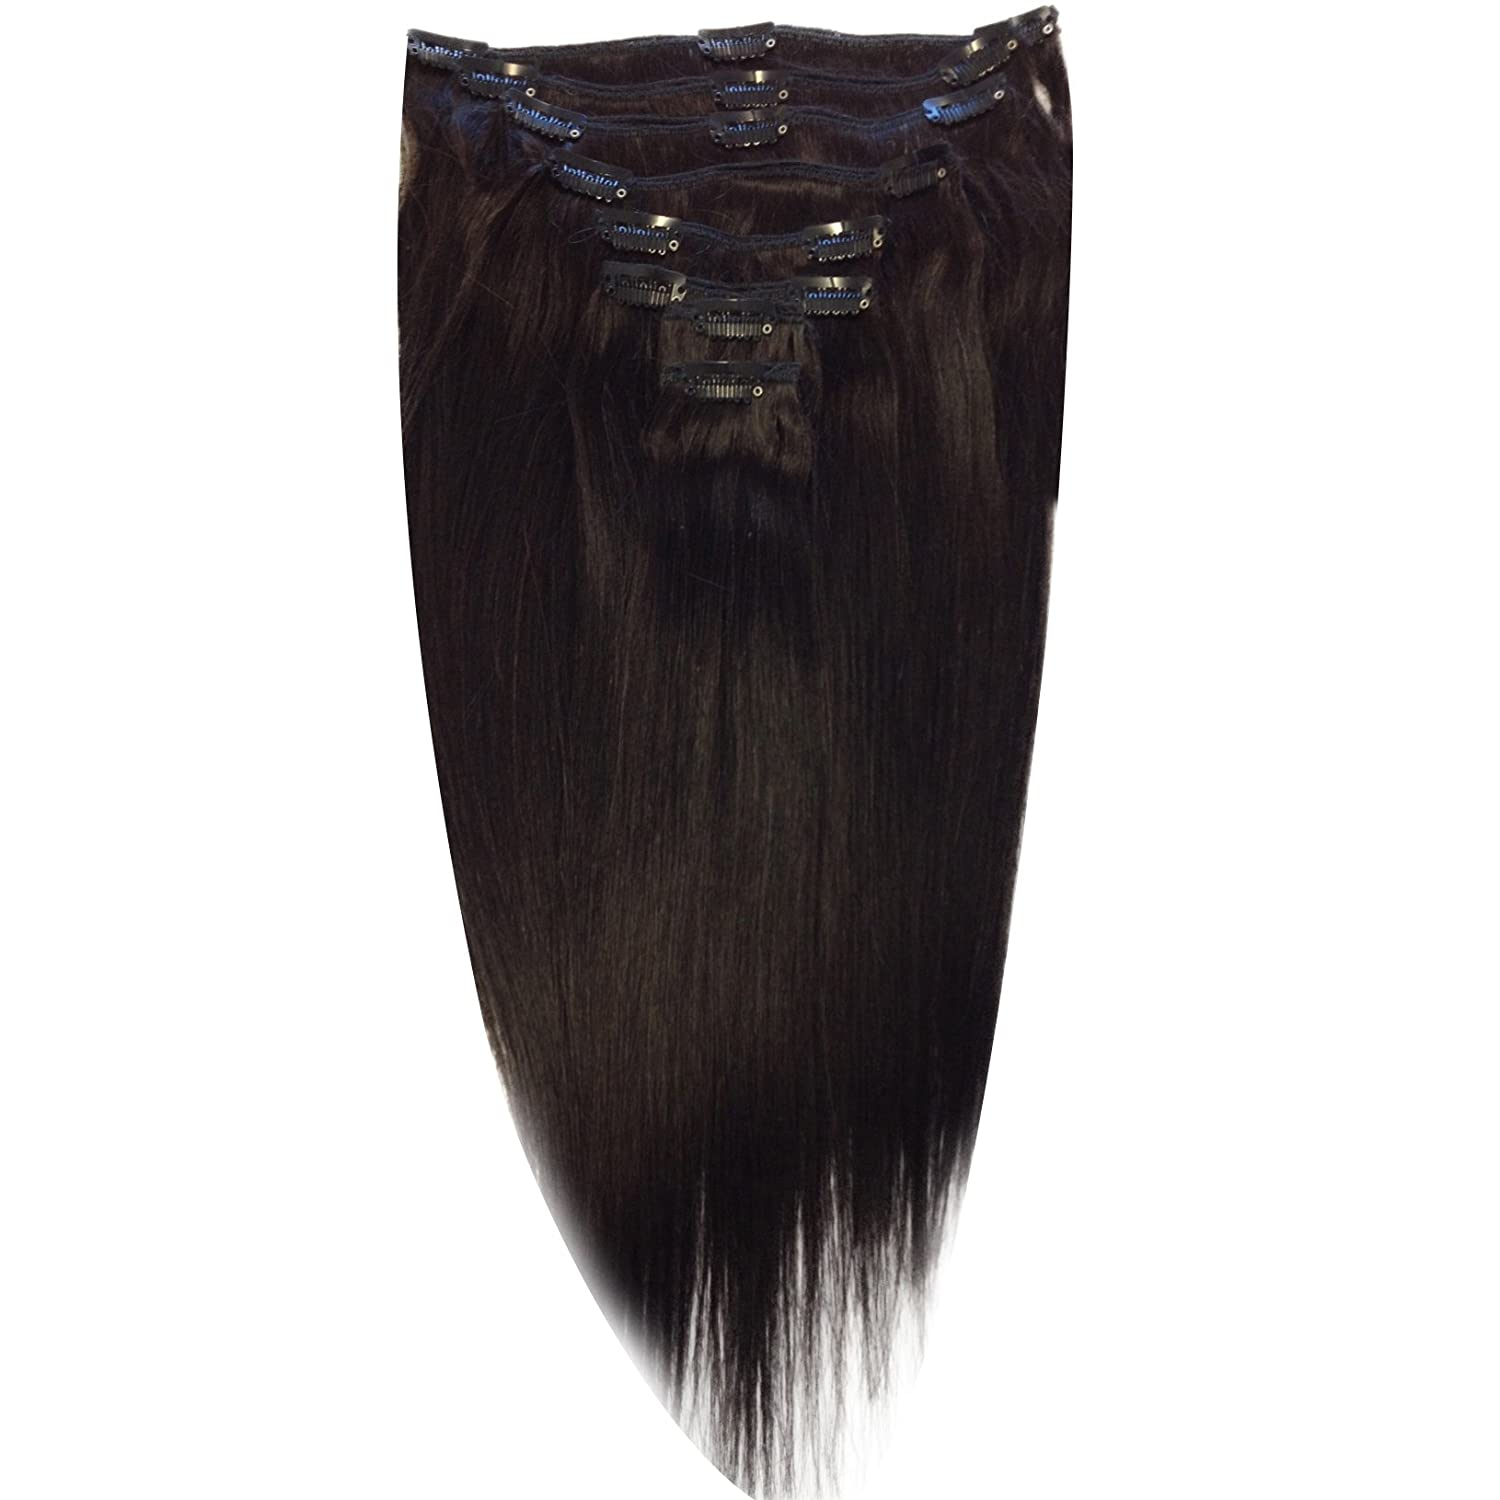 22 Inch Off Black Col 1b Full Head Clip In Human Hair Extensions